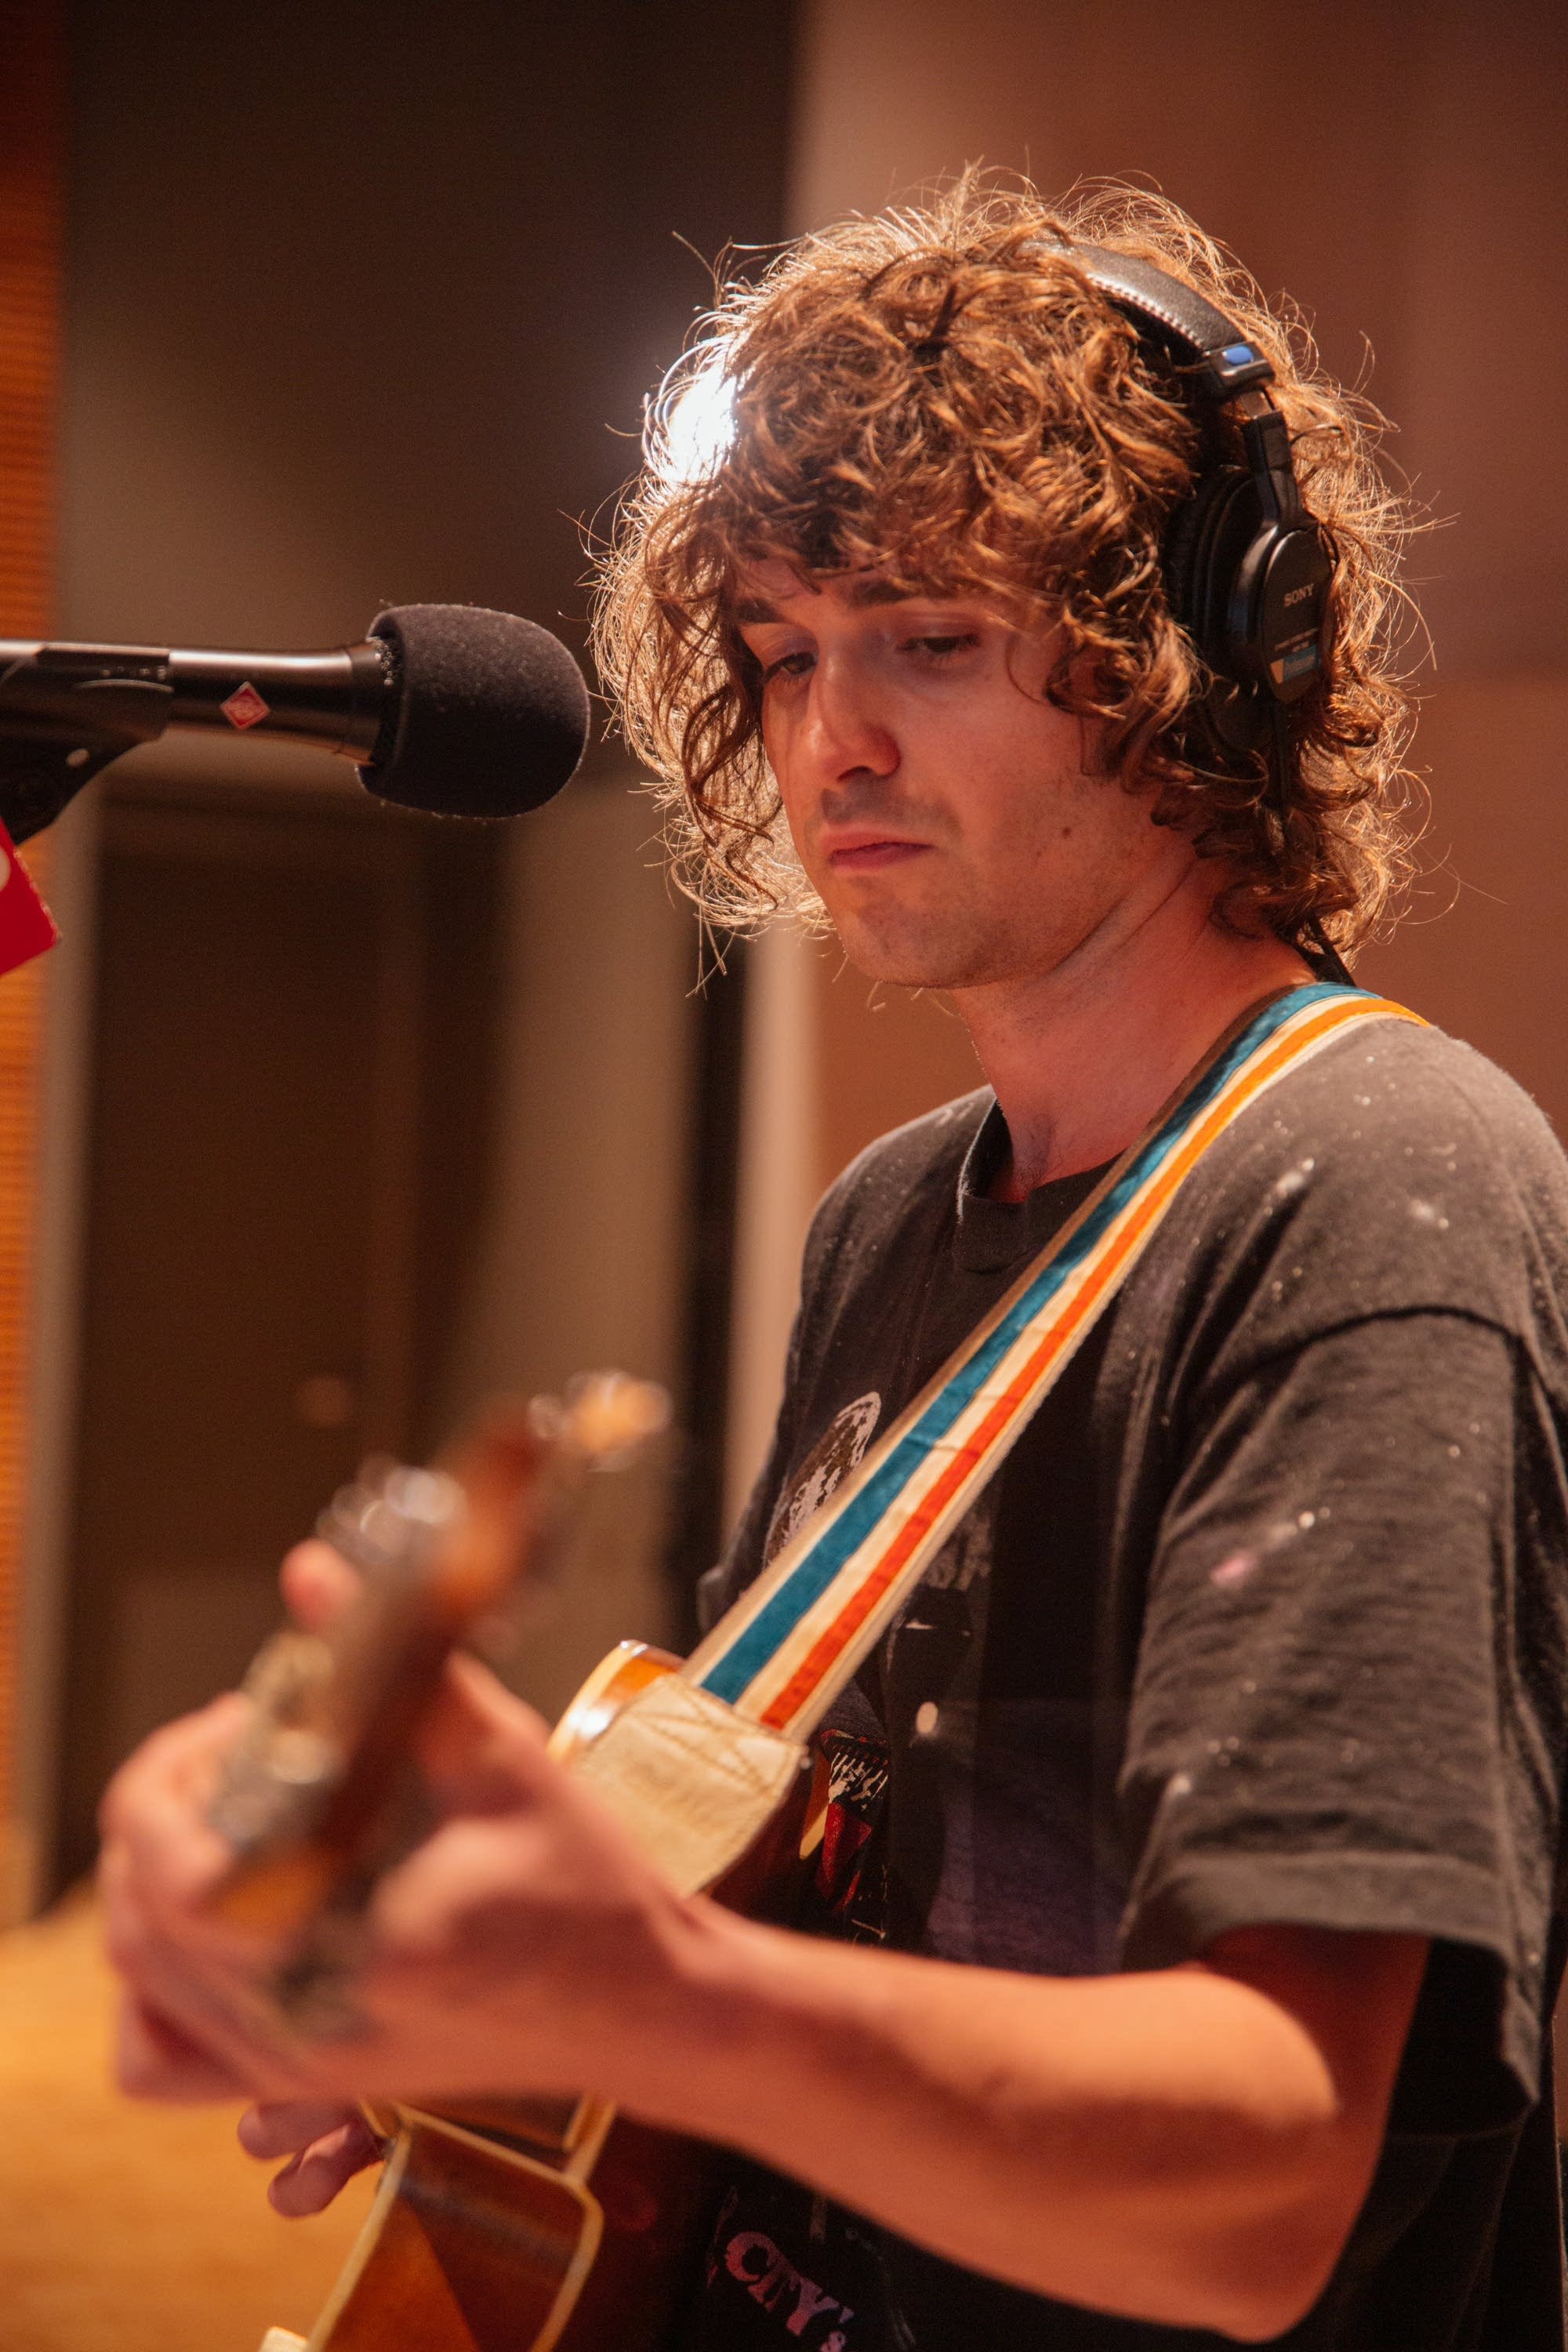 Night Moves perform in The Current studio